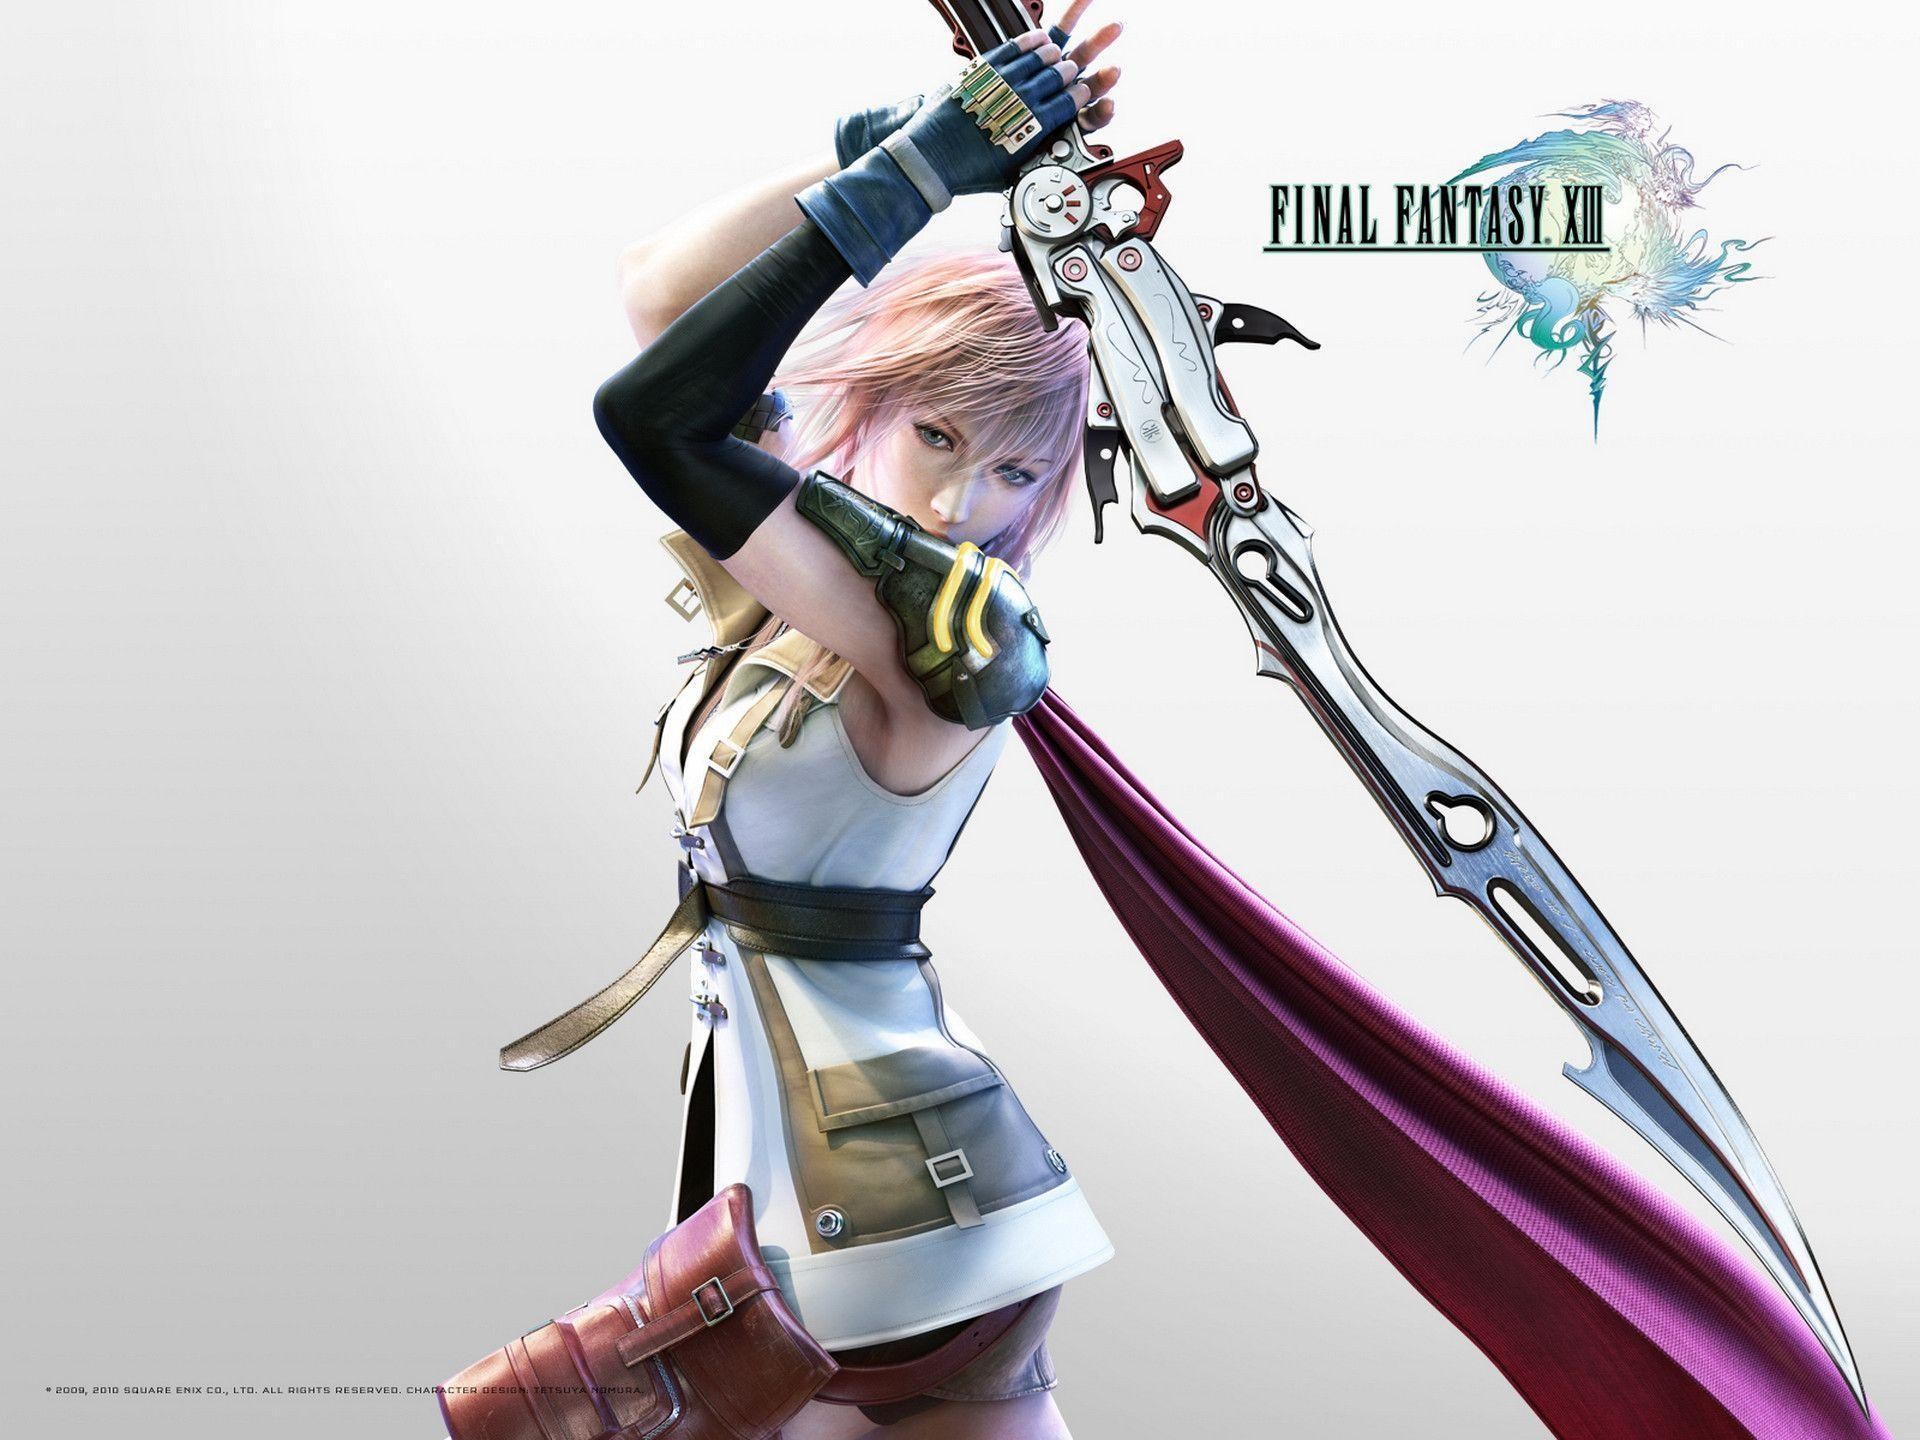 Final Fantasy Xii Friki Wide Wallpapers, HQ Backgrounds